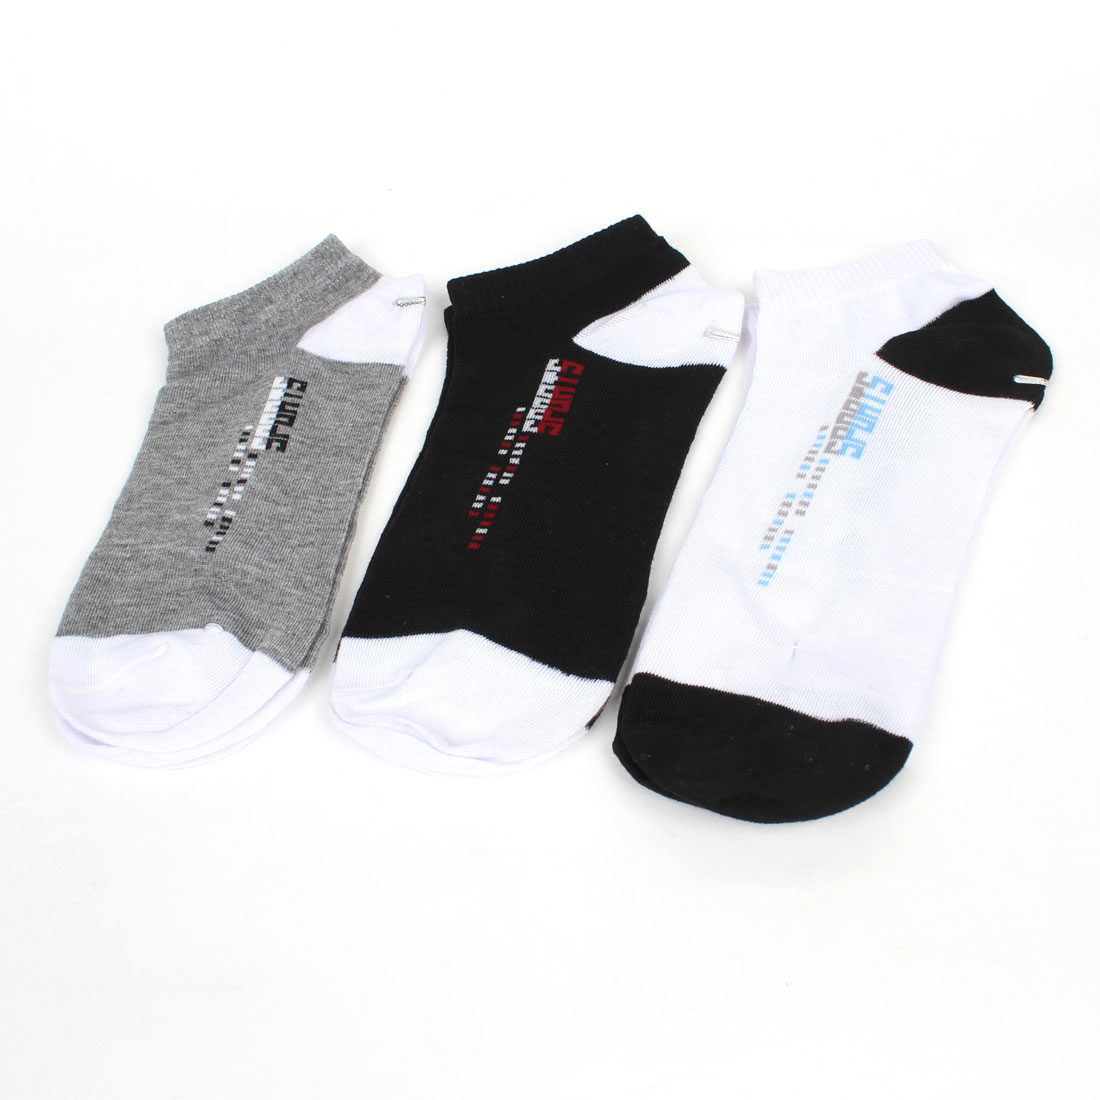 Men Elastic Cuff Low Cut Sports Ankle Socks Black Gray White 3 Pairs